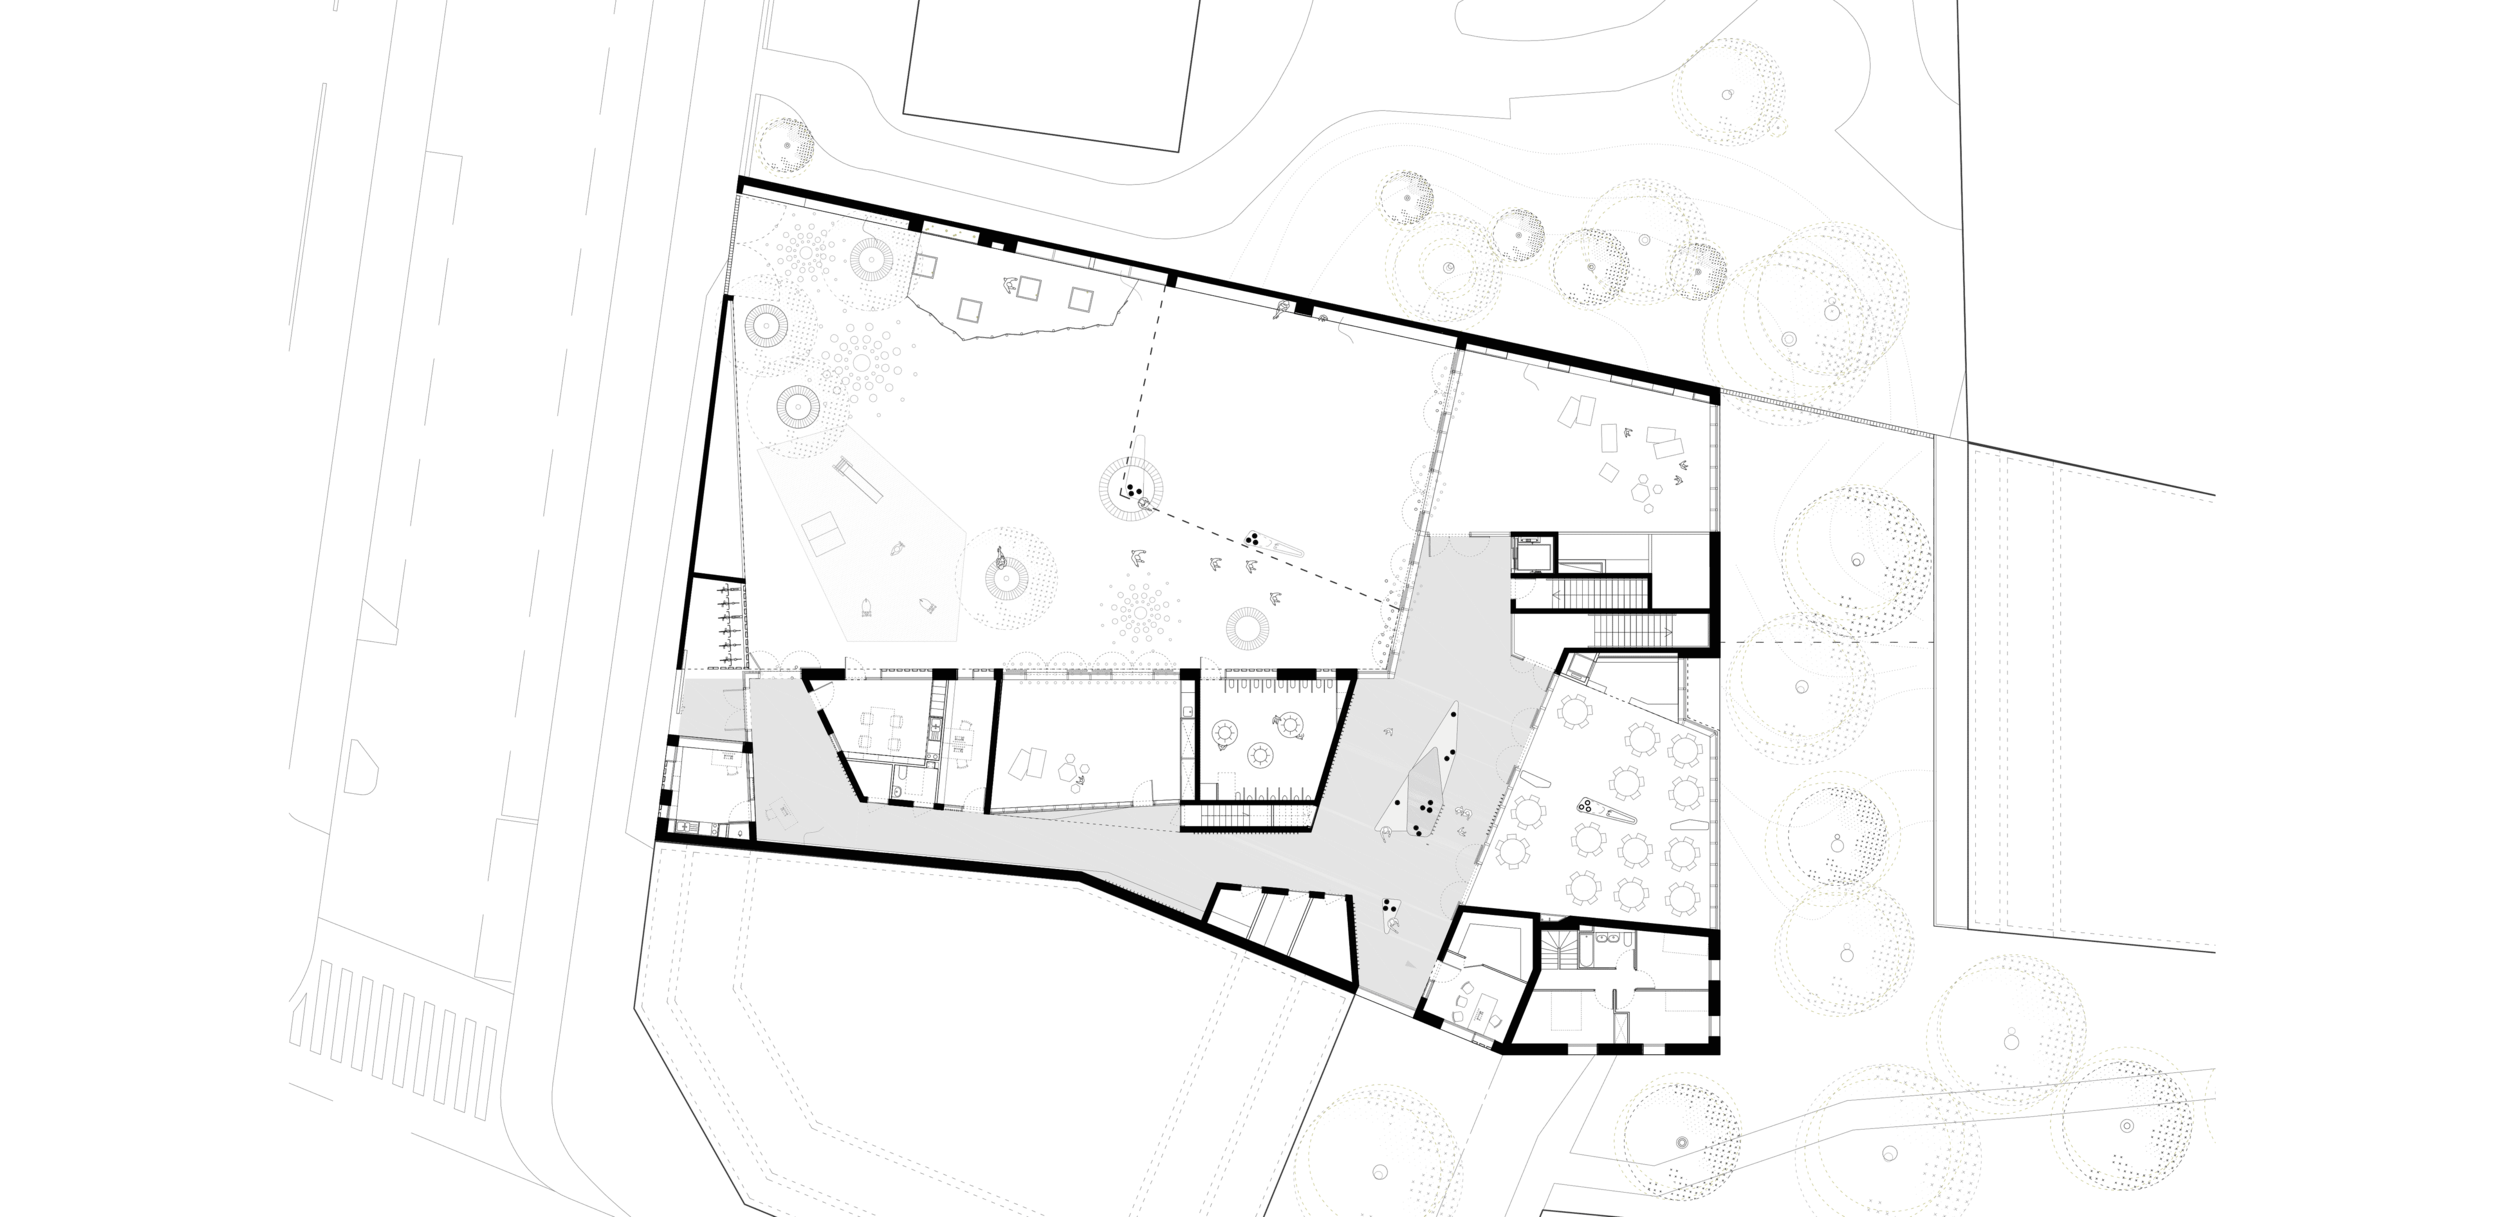 Ecole-Paris-Plan-courant.png